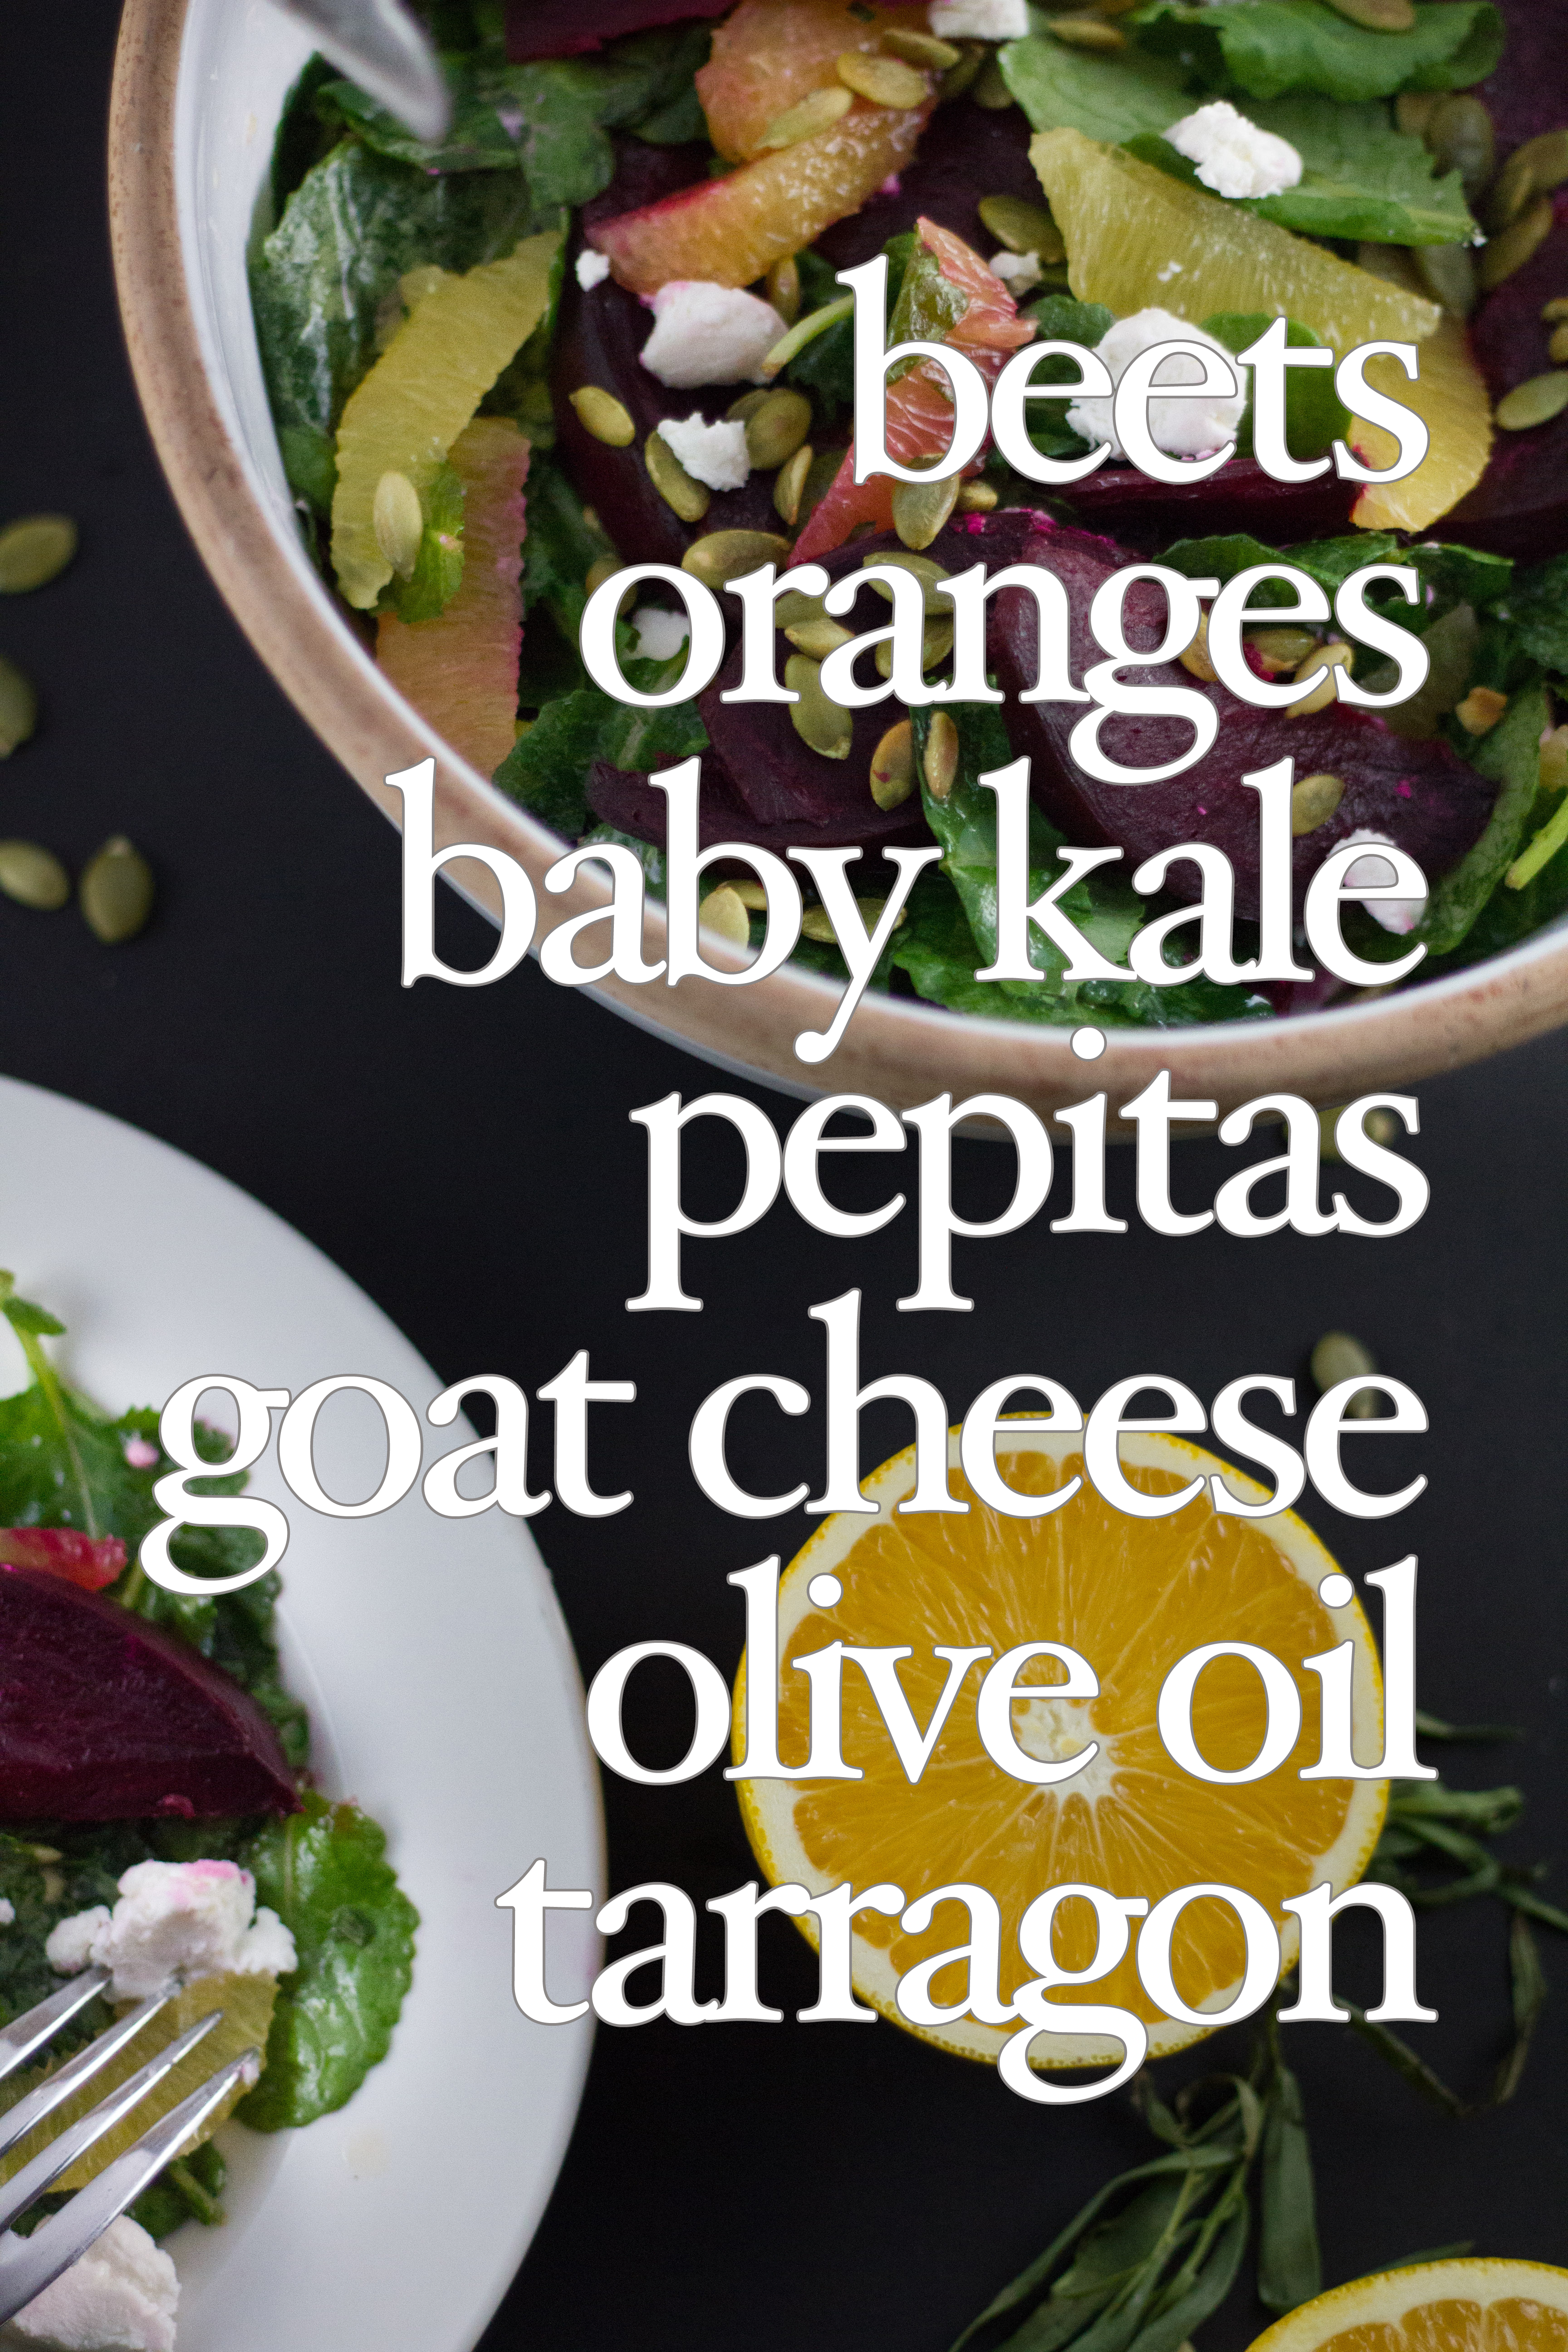 beet orange and kale salad (7 of 9) text